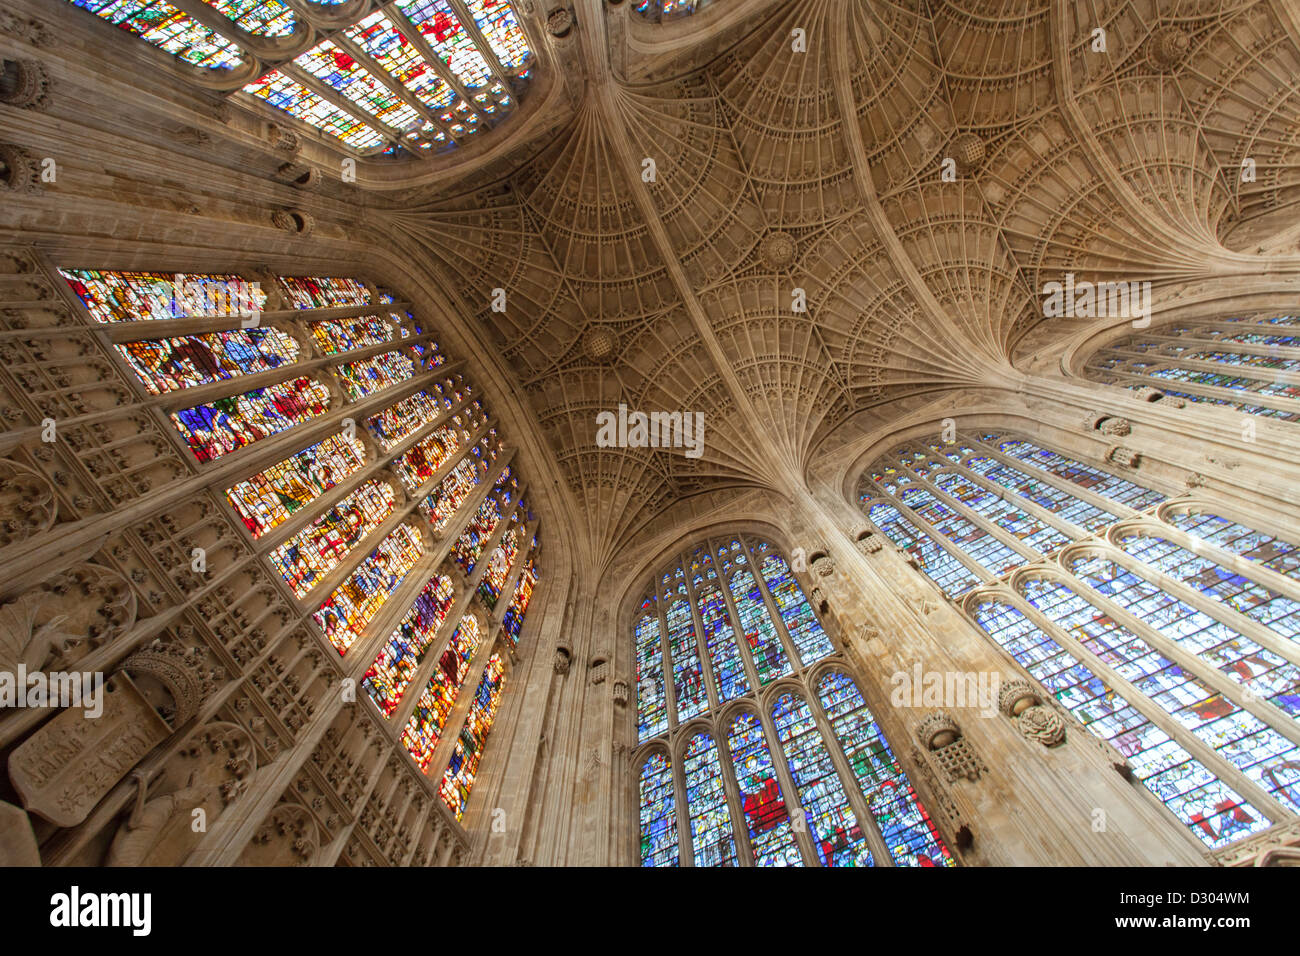 Kings College Chapel stained glass windows and ornate ceiling Stock Photo